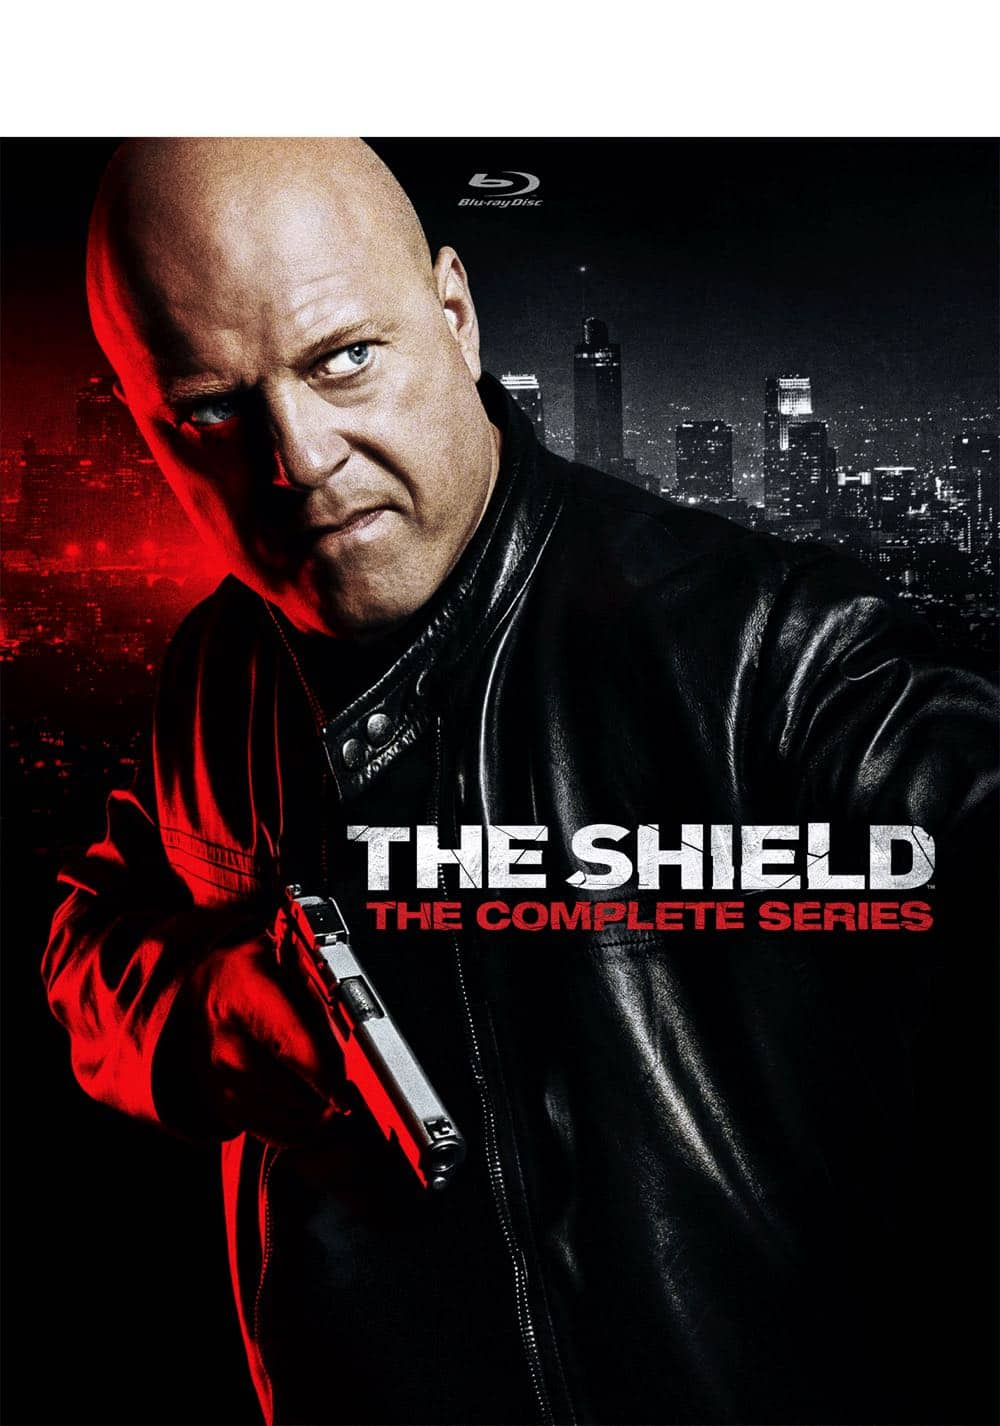 THE-SHIELD-The-Complete-Series-Blu-ray-Collectors-Edition